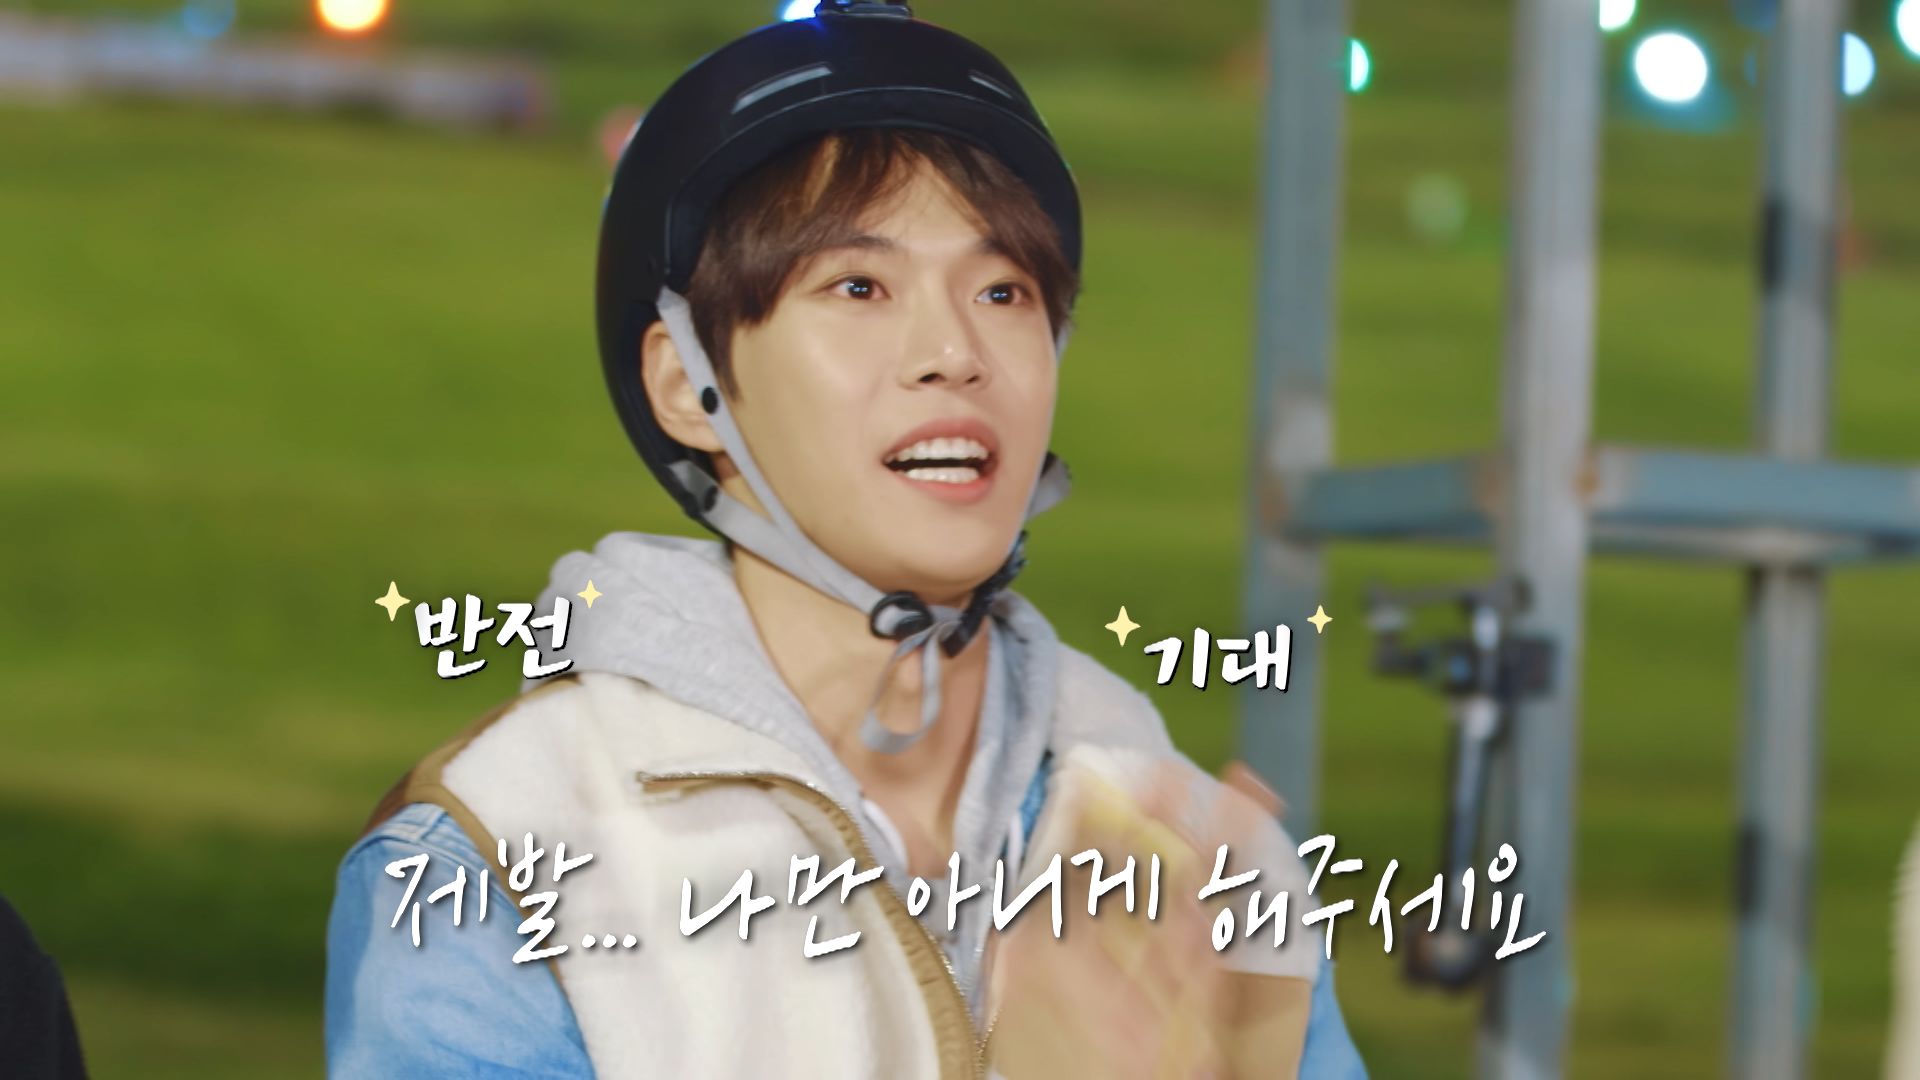 [NCT LIFE] Ep.05 Competitive luge race for dinner